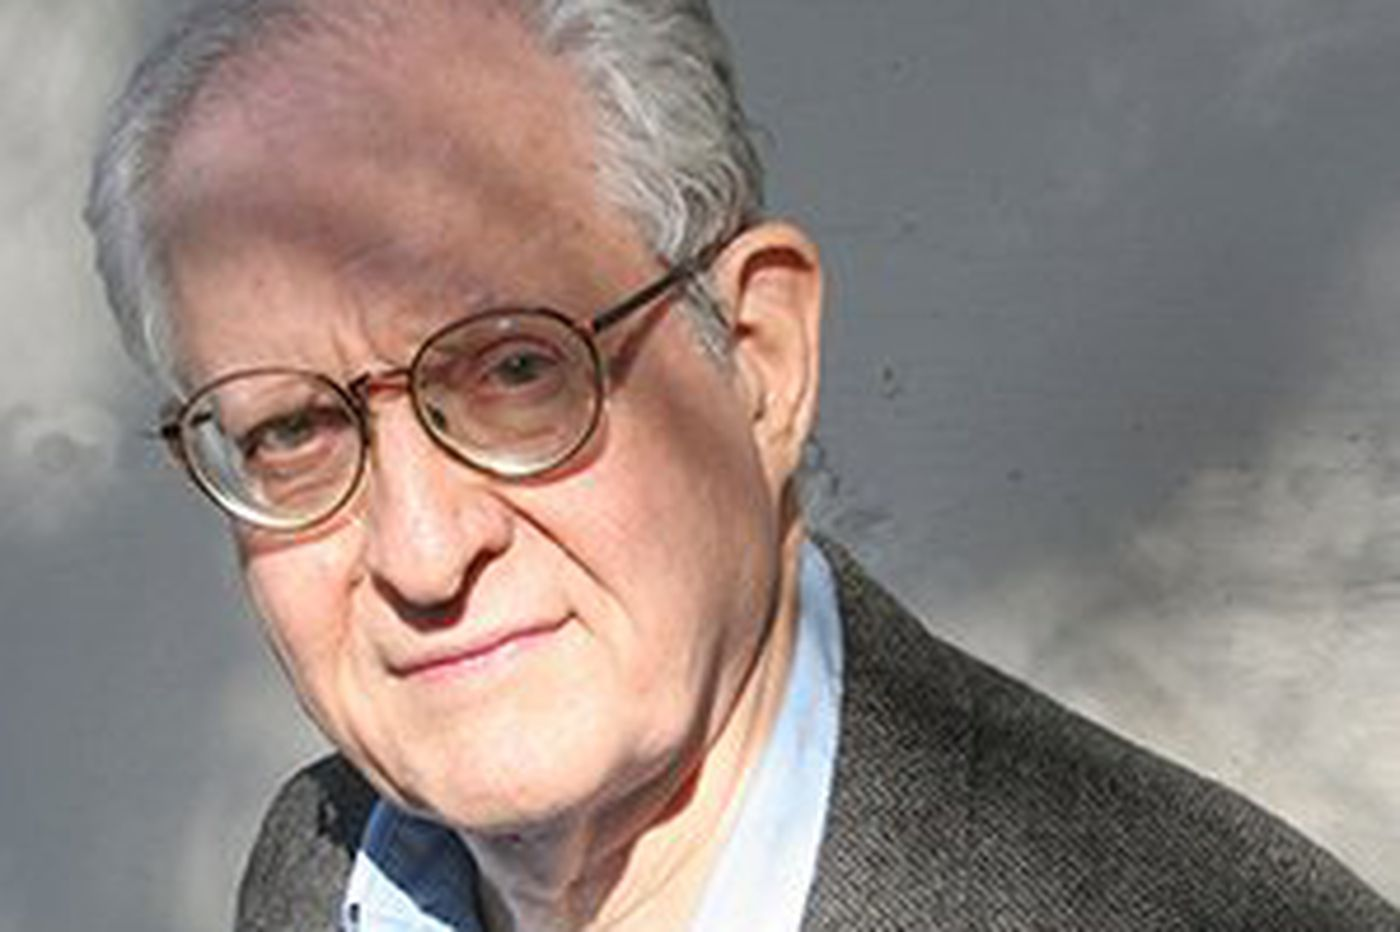 Frederic L. Pryor, 86, Swarthmore College professor snared in the 'Bridge of Spies' case in 1962